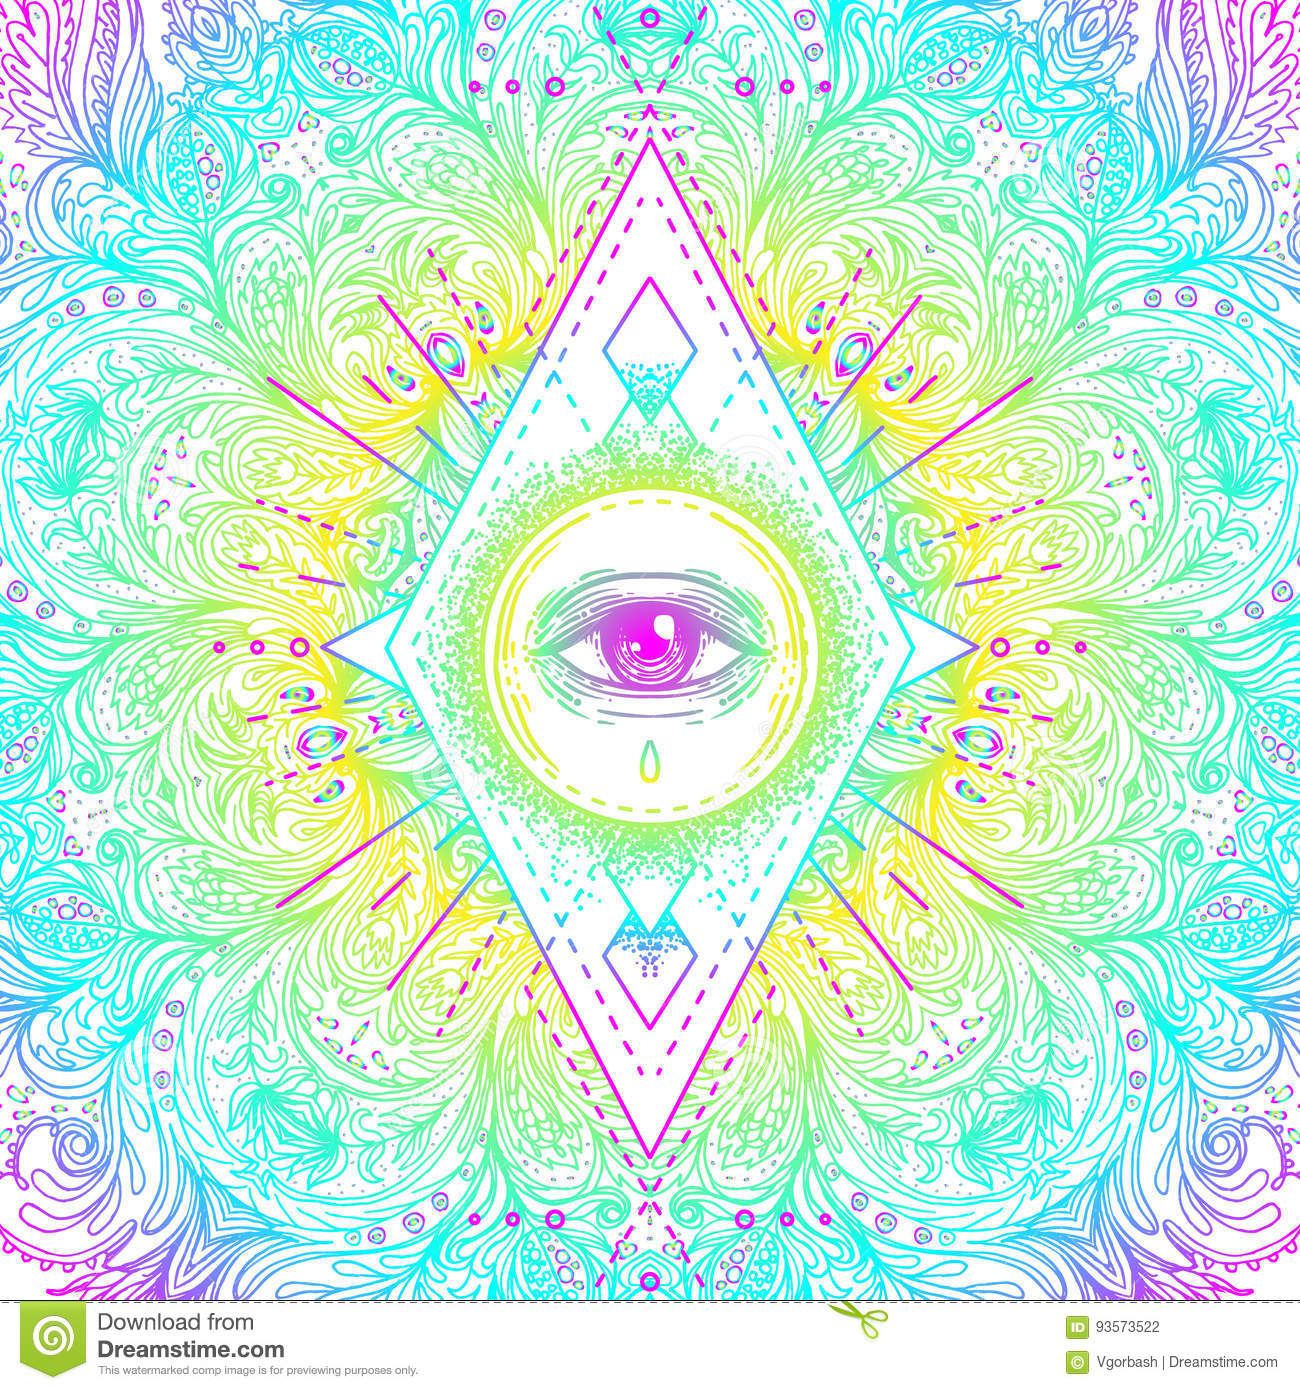 Freemason stock illustrations 555 freemason stock illustrations sacred geometry symbol with all seeing eye in acid colors mysti c alchemy buycottarizona